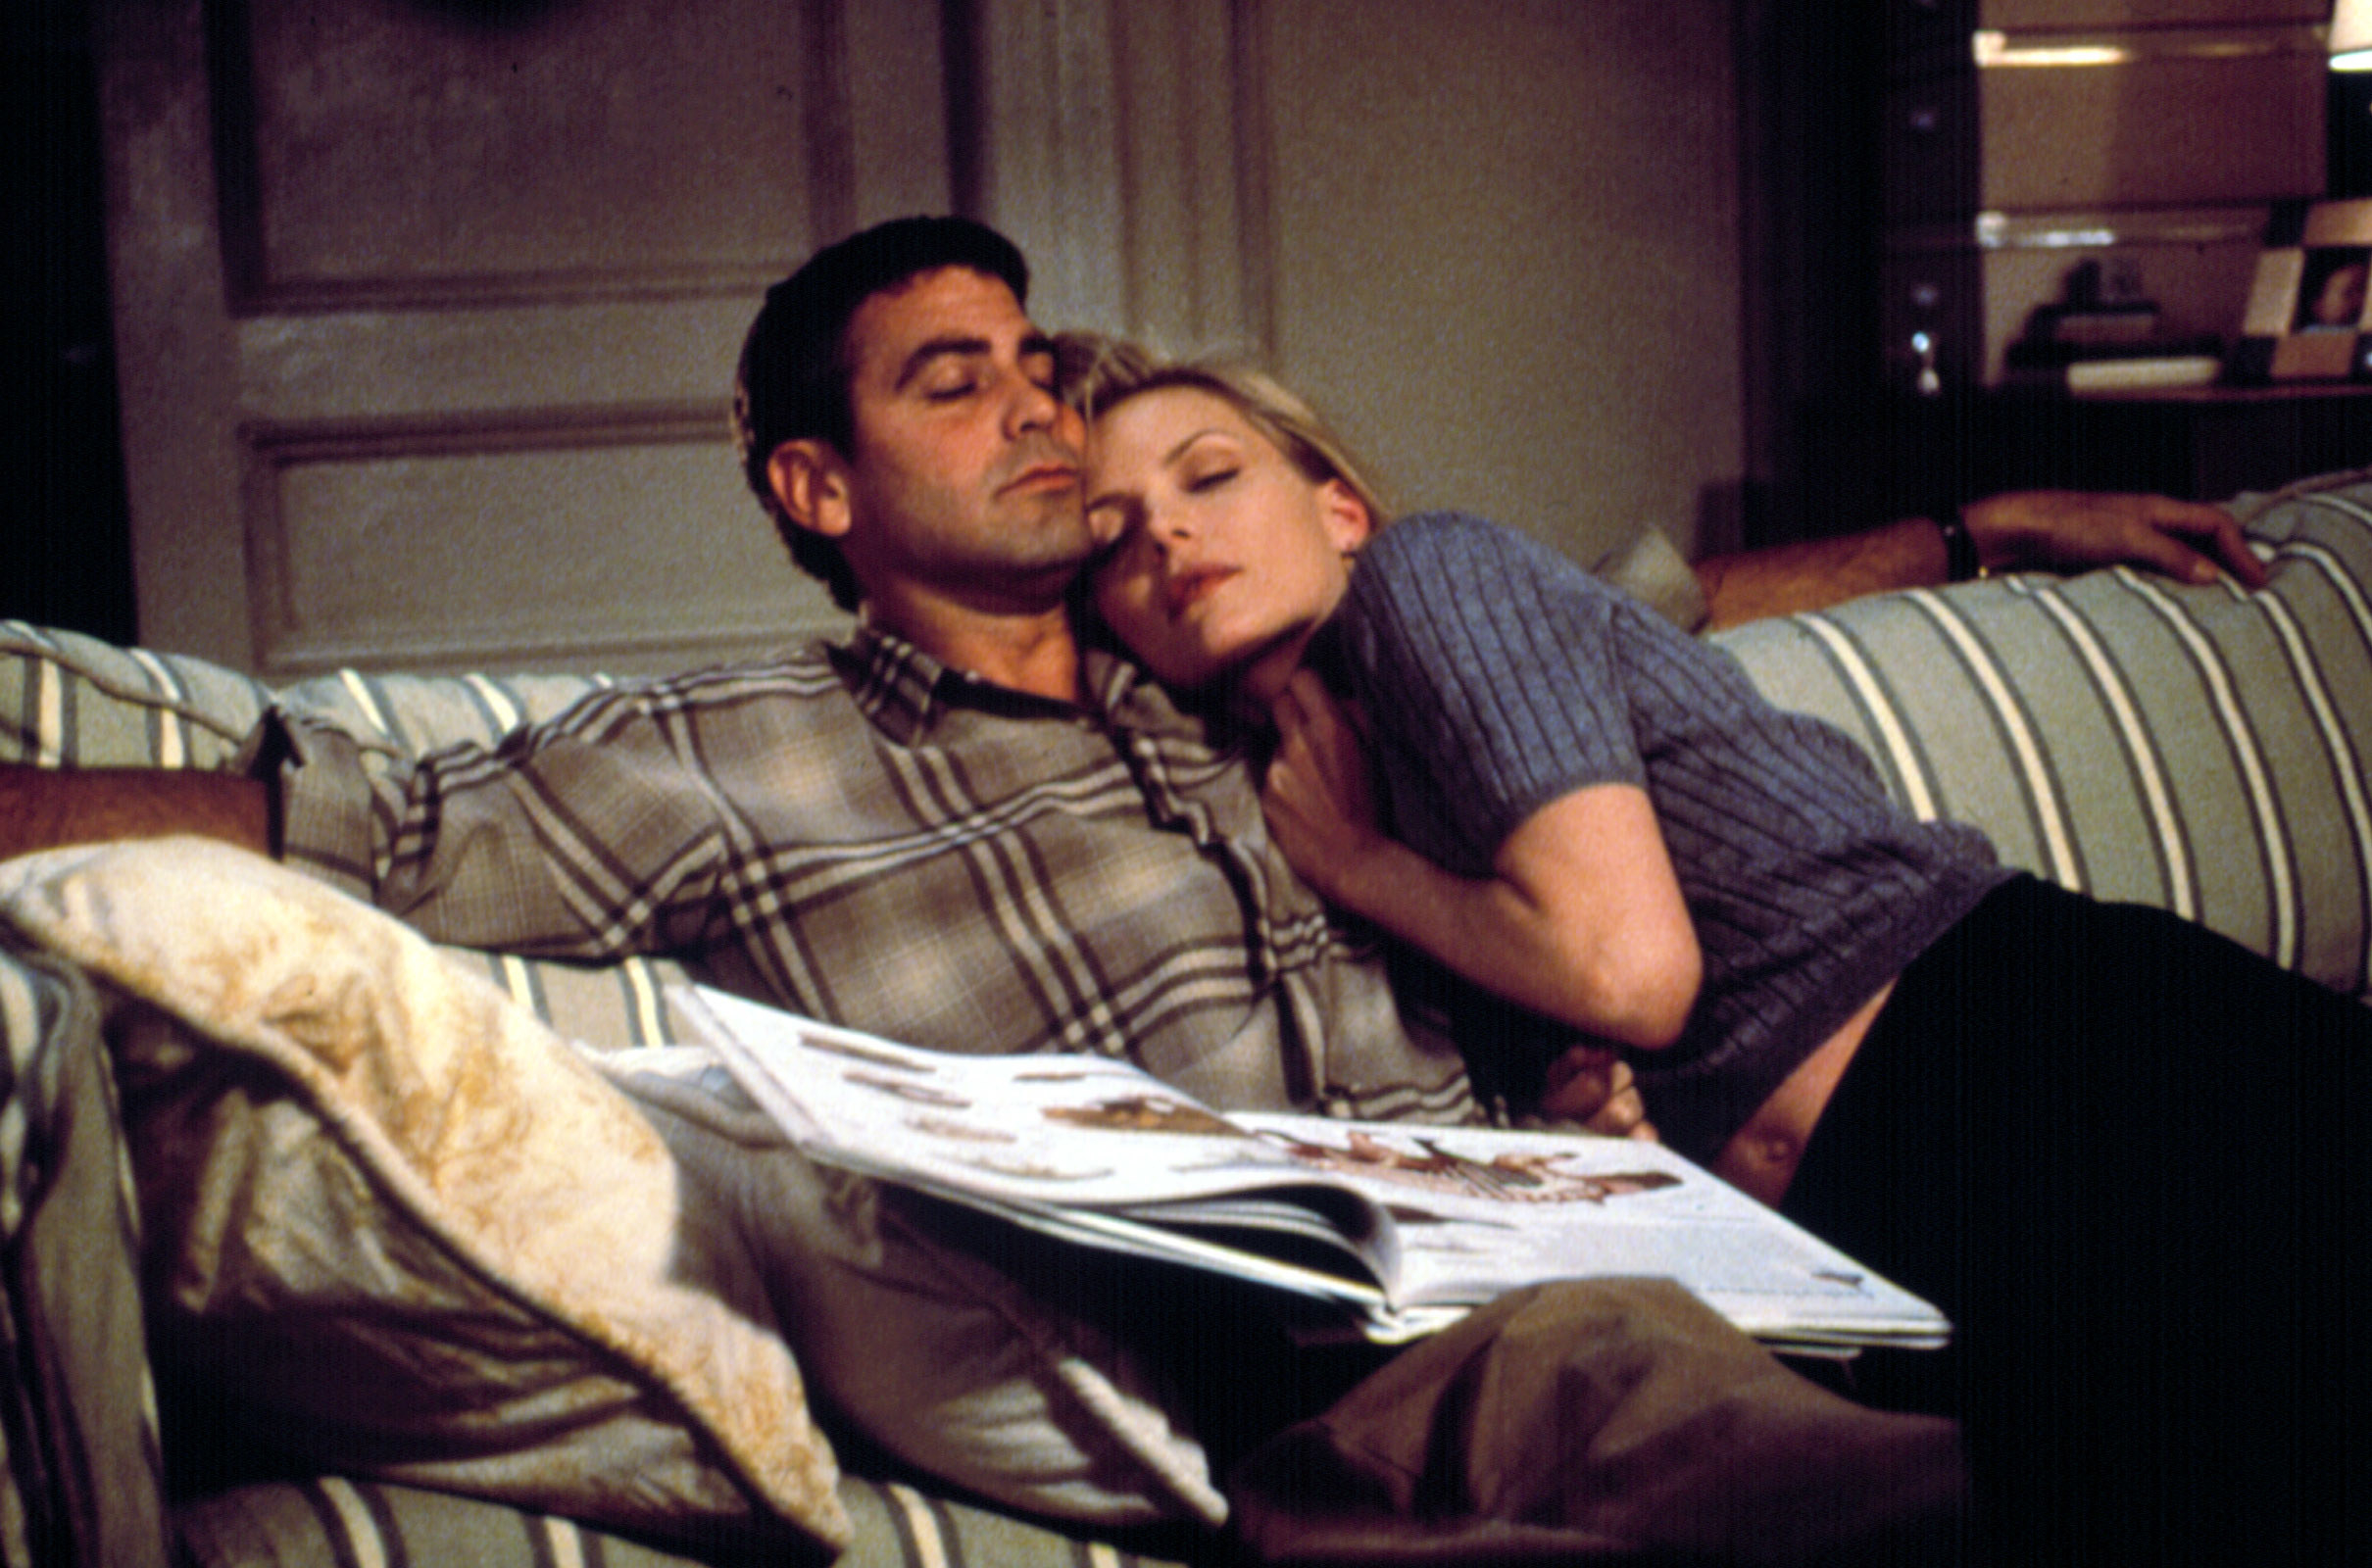 George Clooney Michelle Pfeiffer sleeping on a couch in each other's arms